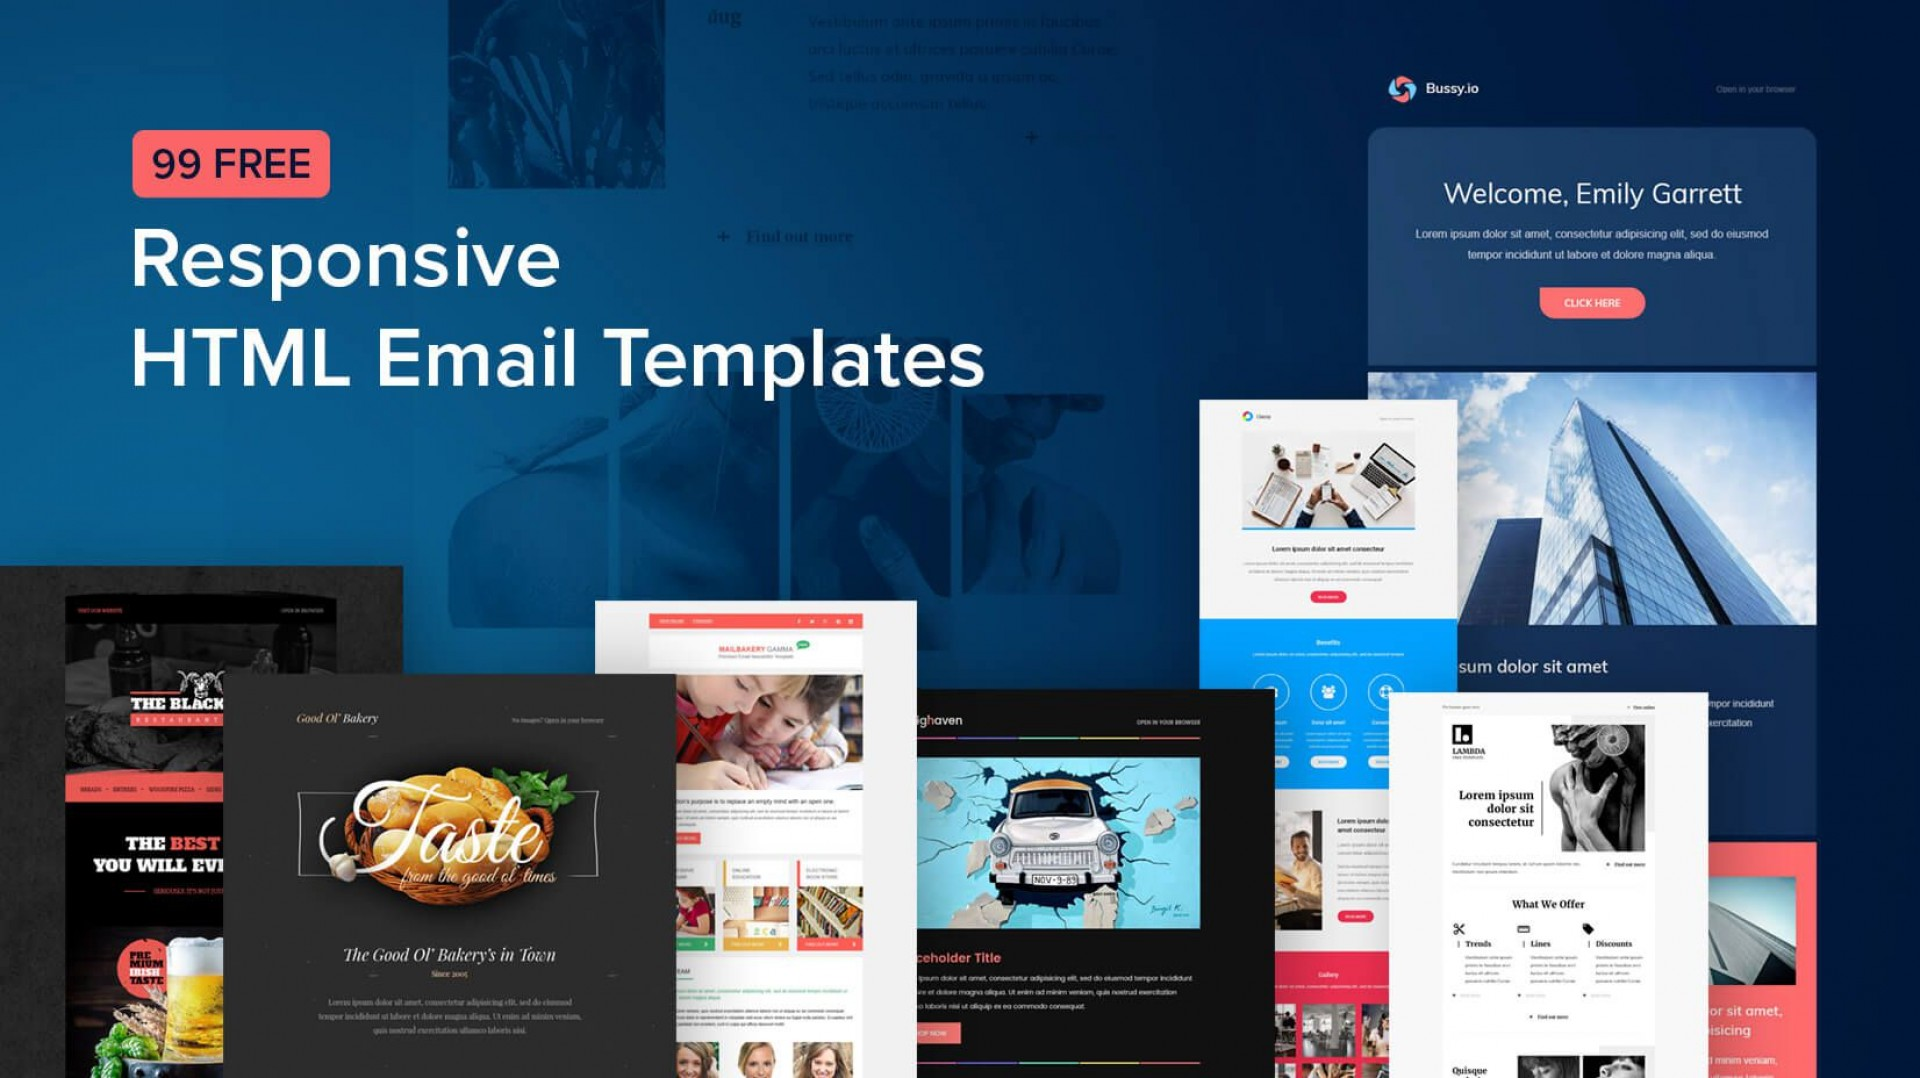 009 Remarkable Free Html Template Download Example  For Online Shopping Website Simple Blog Photo Gallery1920